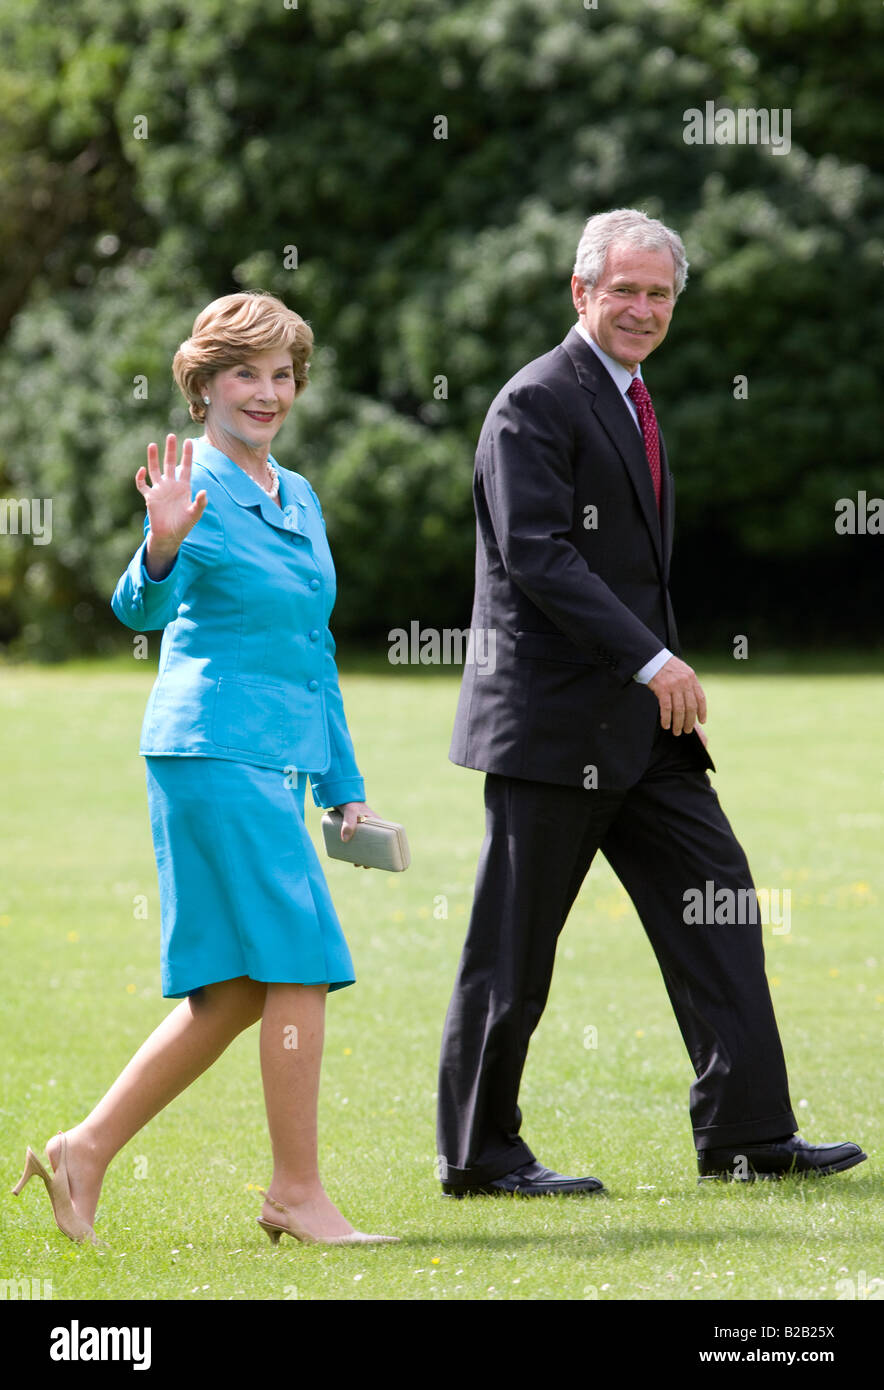 President George W Bush and his wife First Lady Laura Bush in England United Kingdom - Stock Image